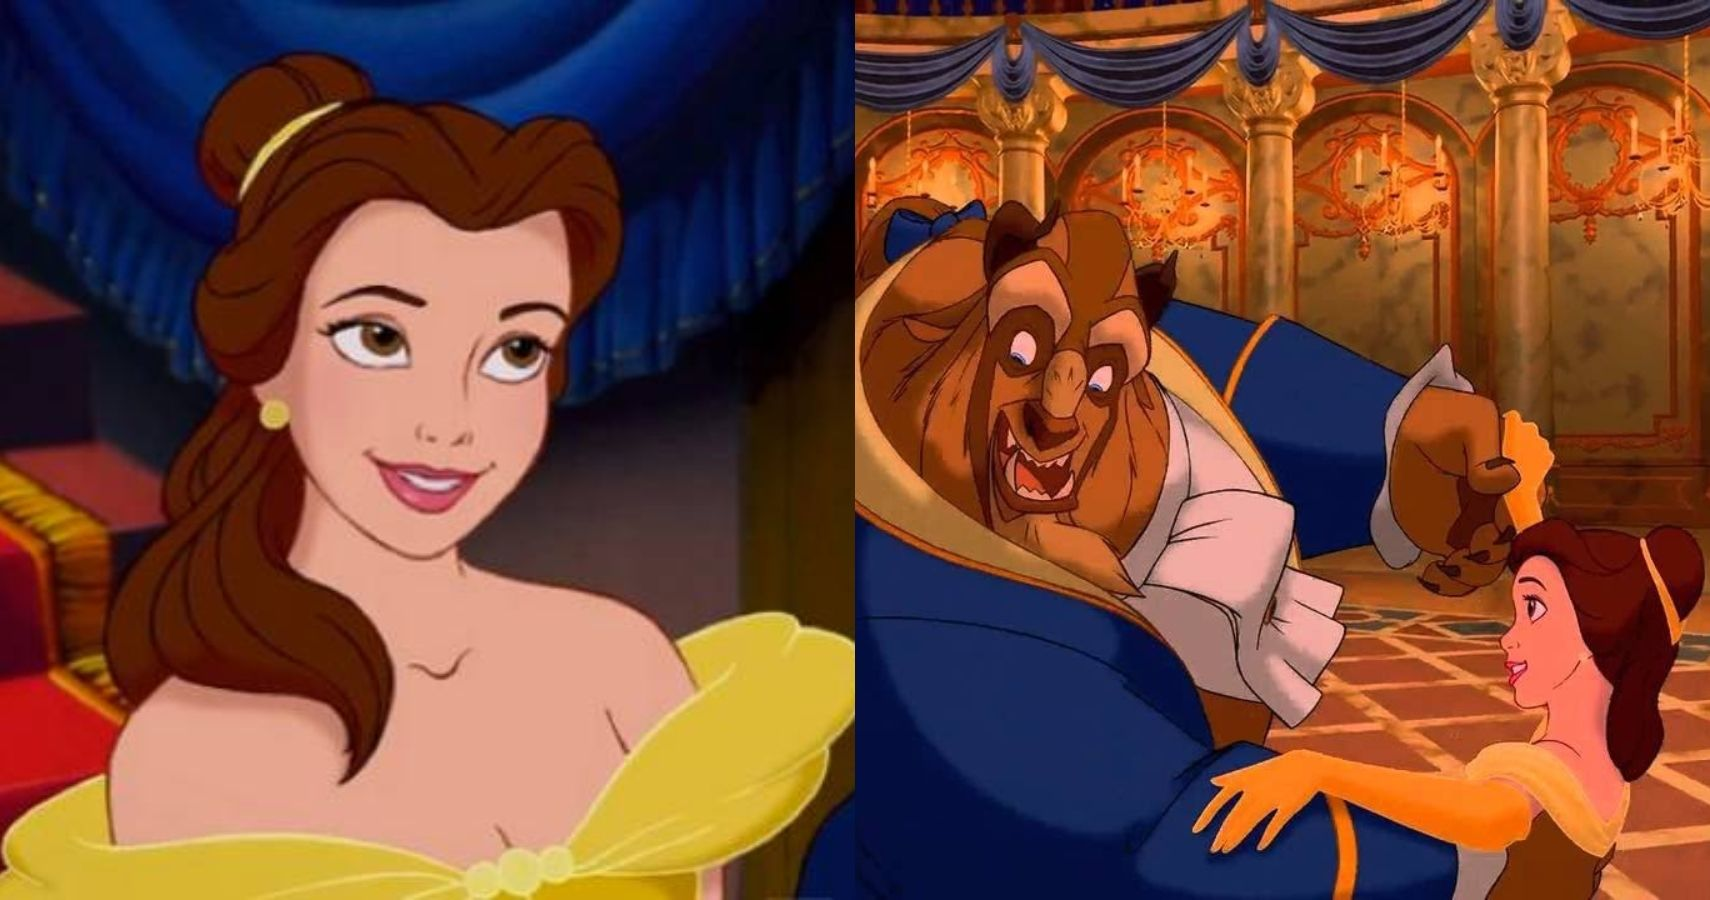 Haven Gaston 10 things from beauty and the beast that haven't aged well